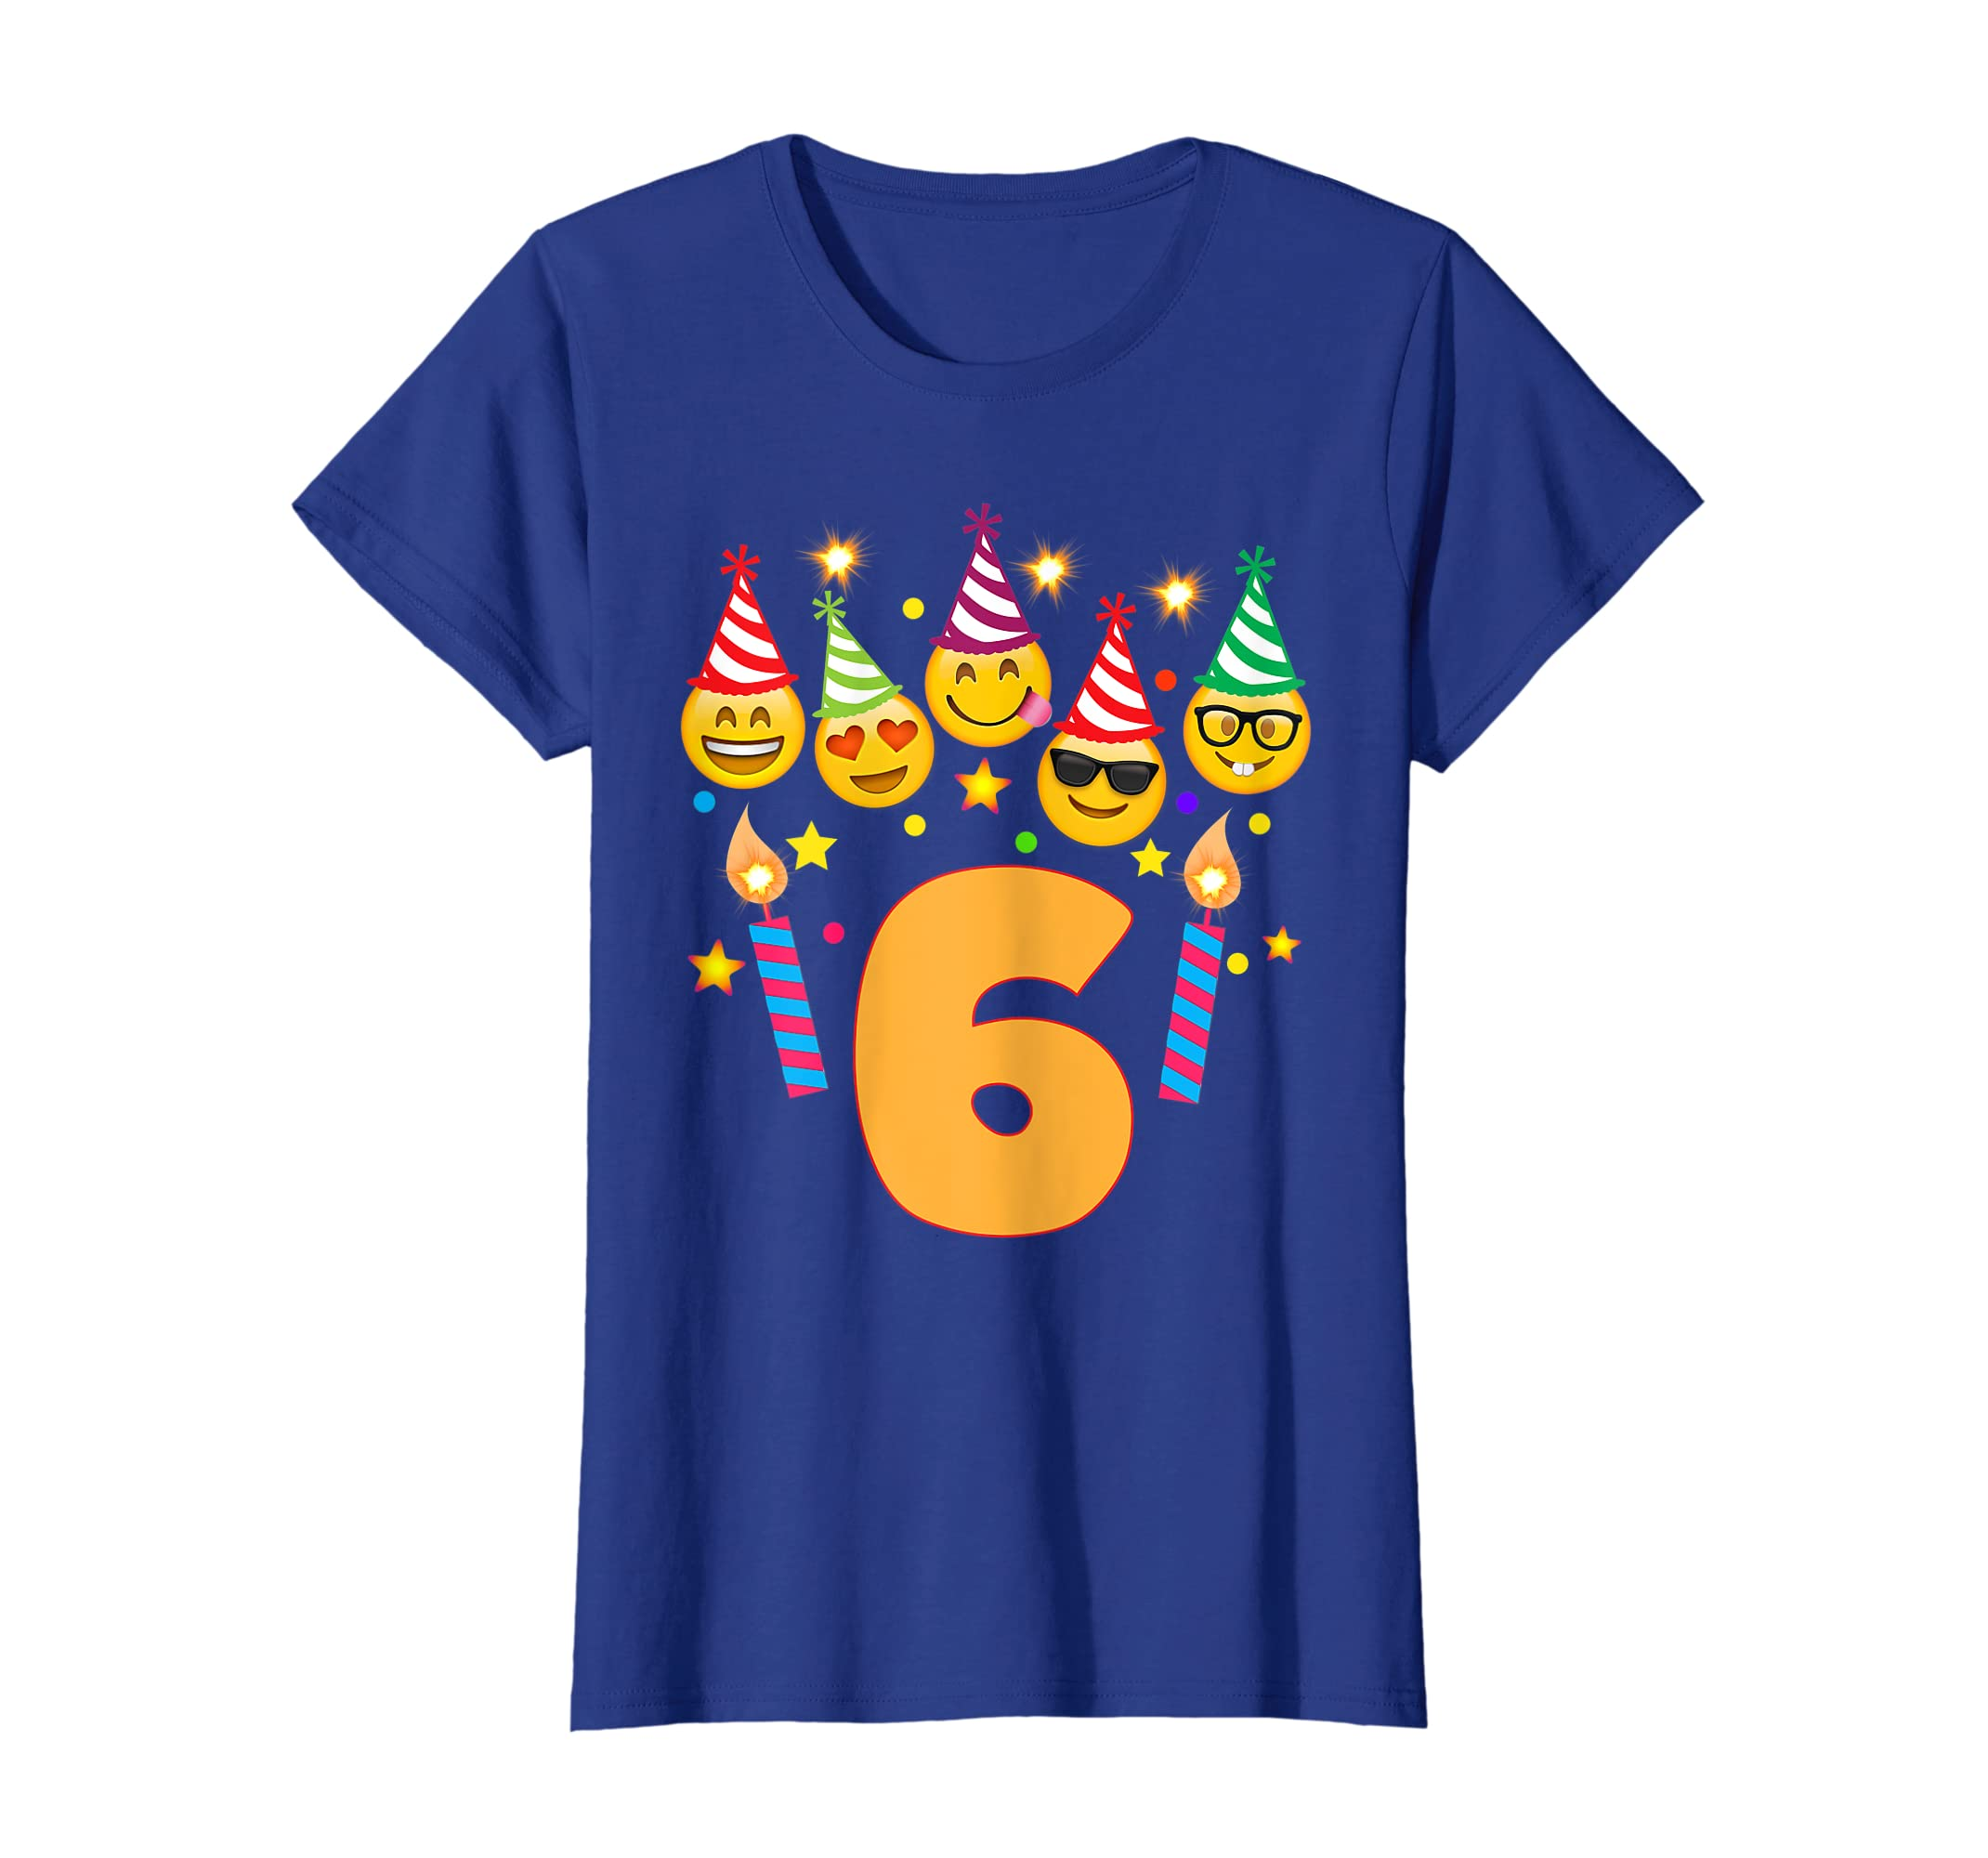 Amazon Emoji Birthday Shirt For 6 Six Year Old Girl Boy Toddler Clothing